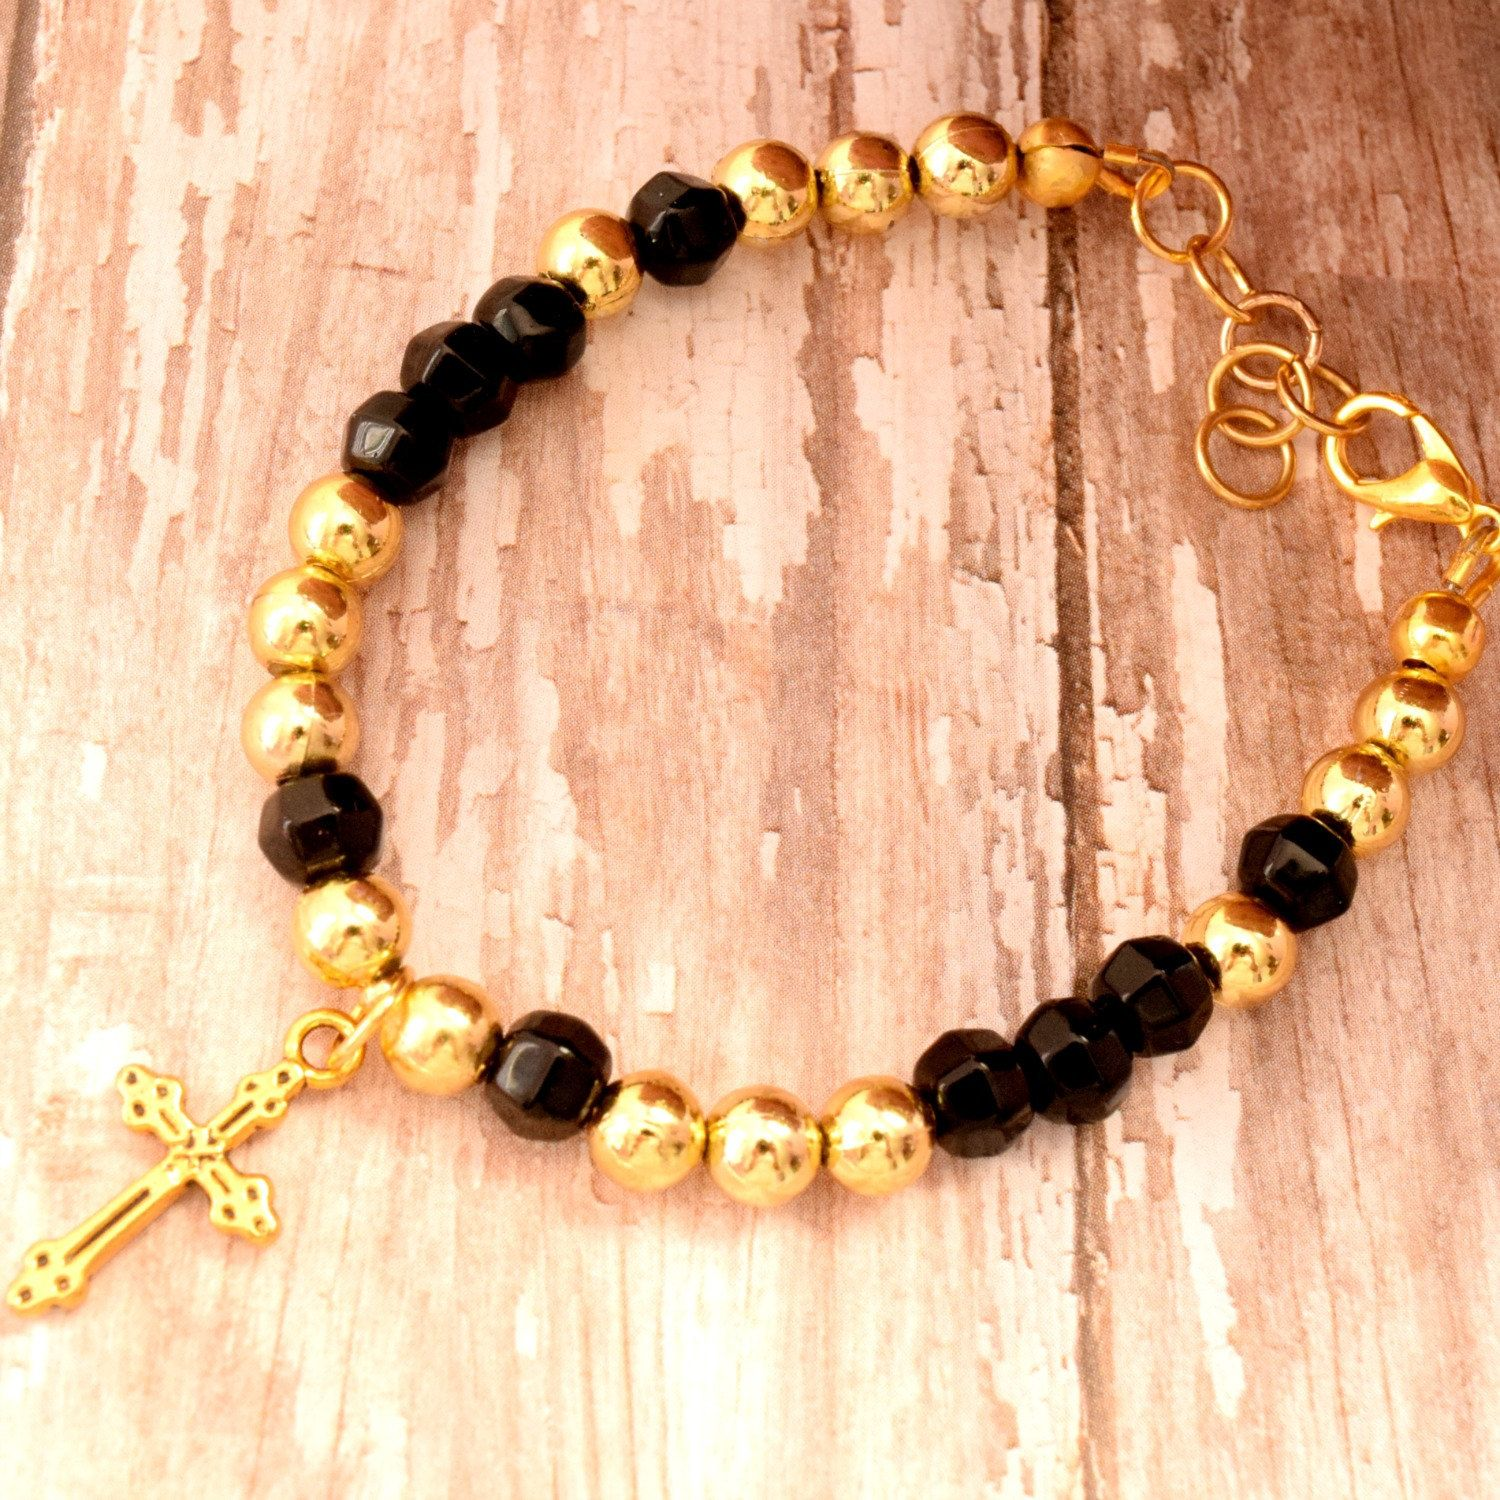 Christian Jewelry For Kids Childrens Jewelry Cross Jewelry Black